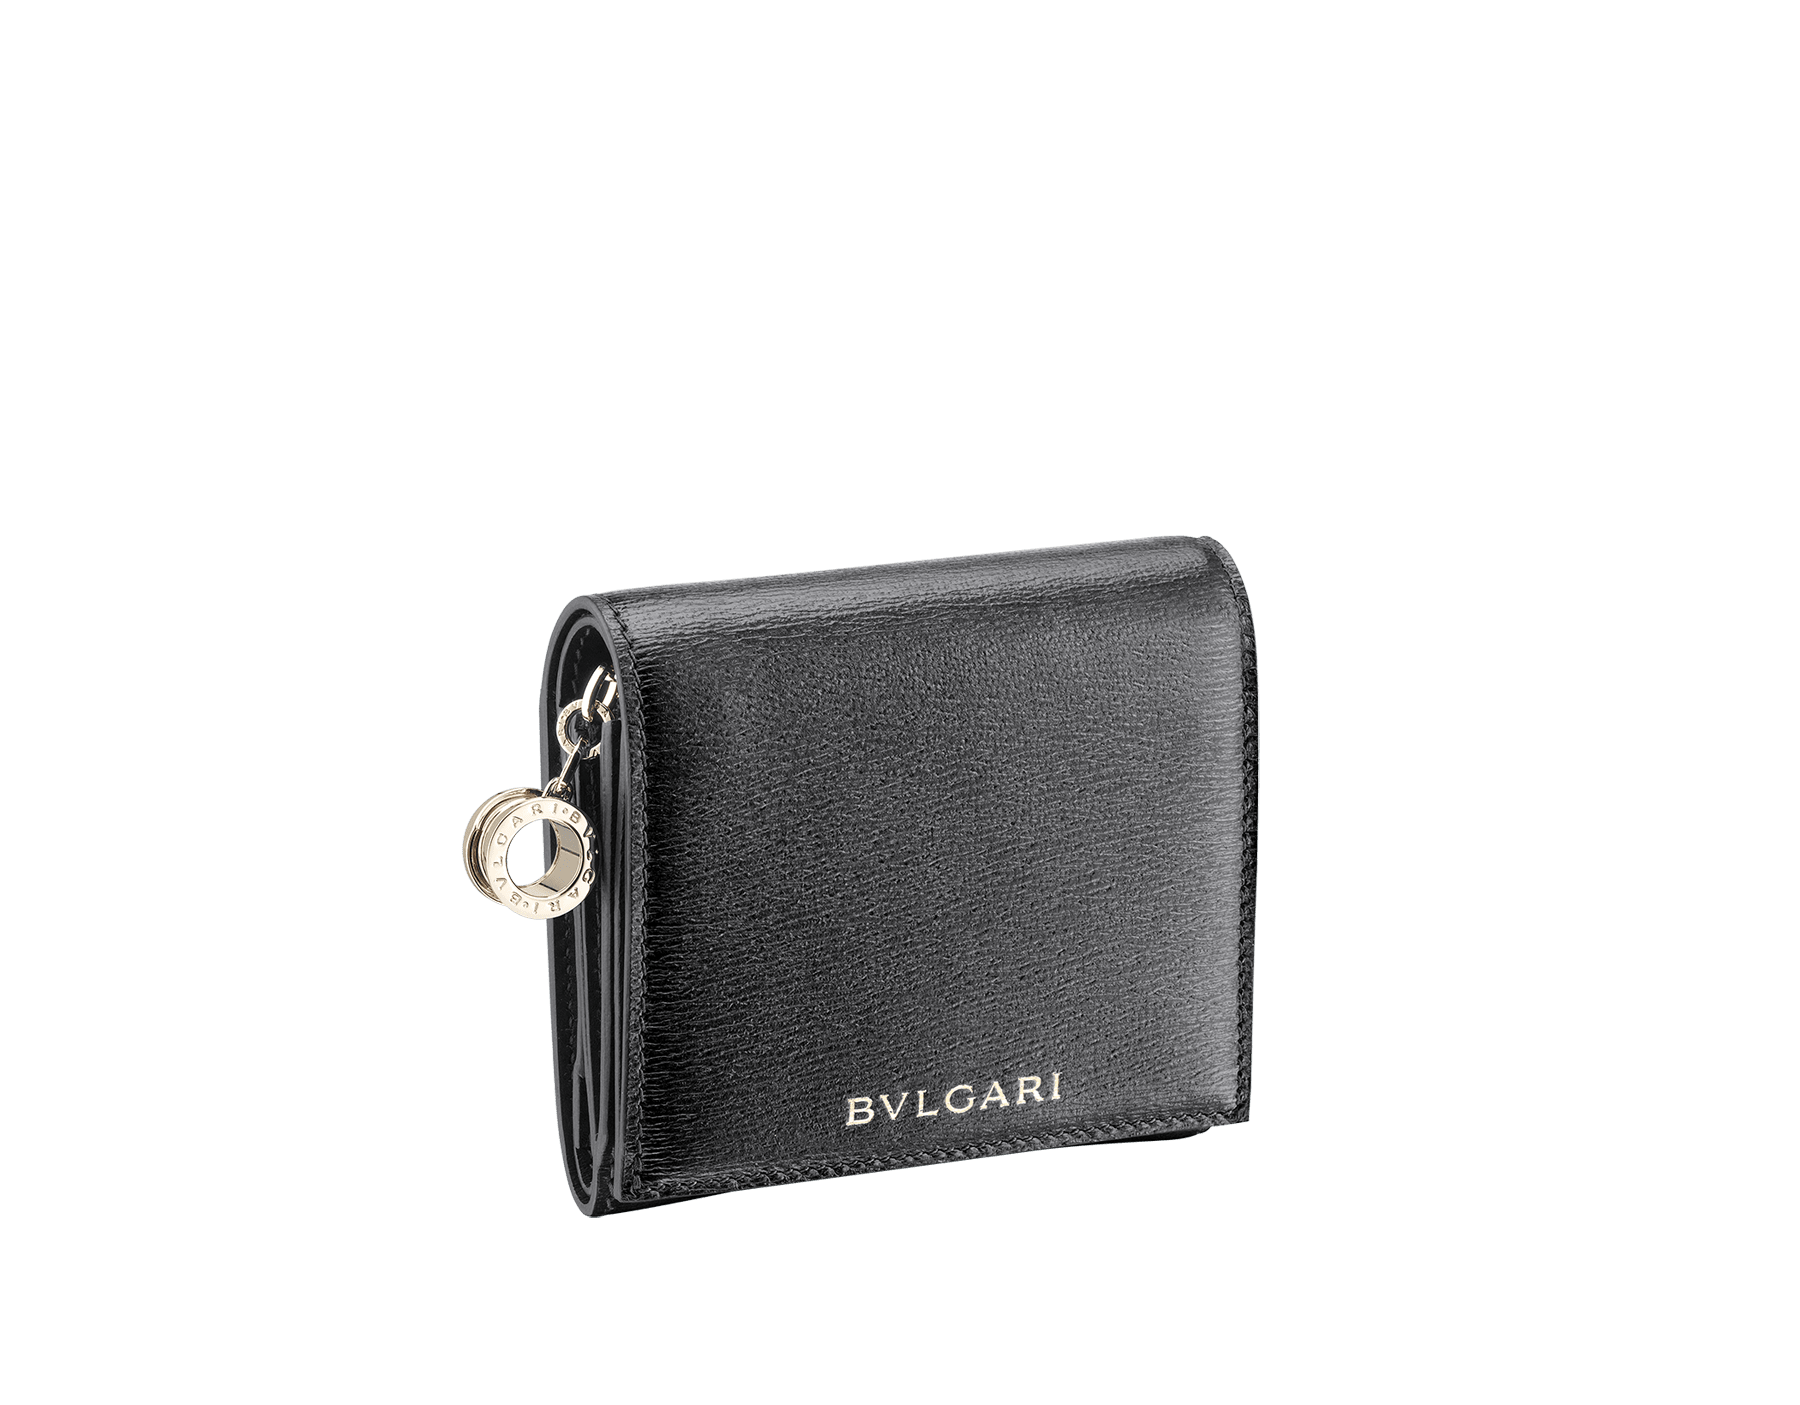 B.zero1 super compact wallet in black goatskin. Iconic B.zero1 charm in light gold plated brass. 288240 image 1